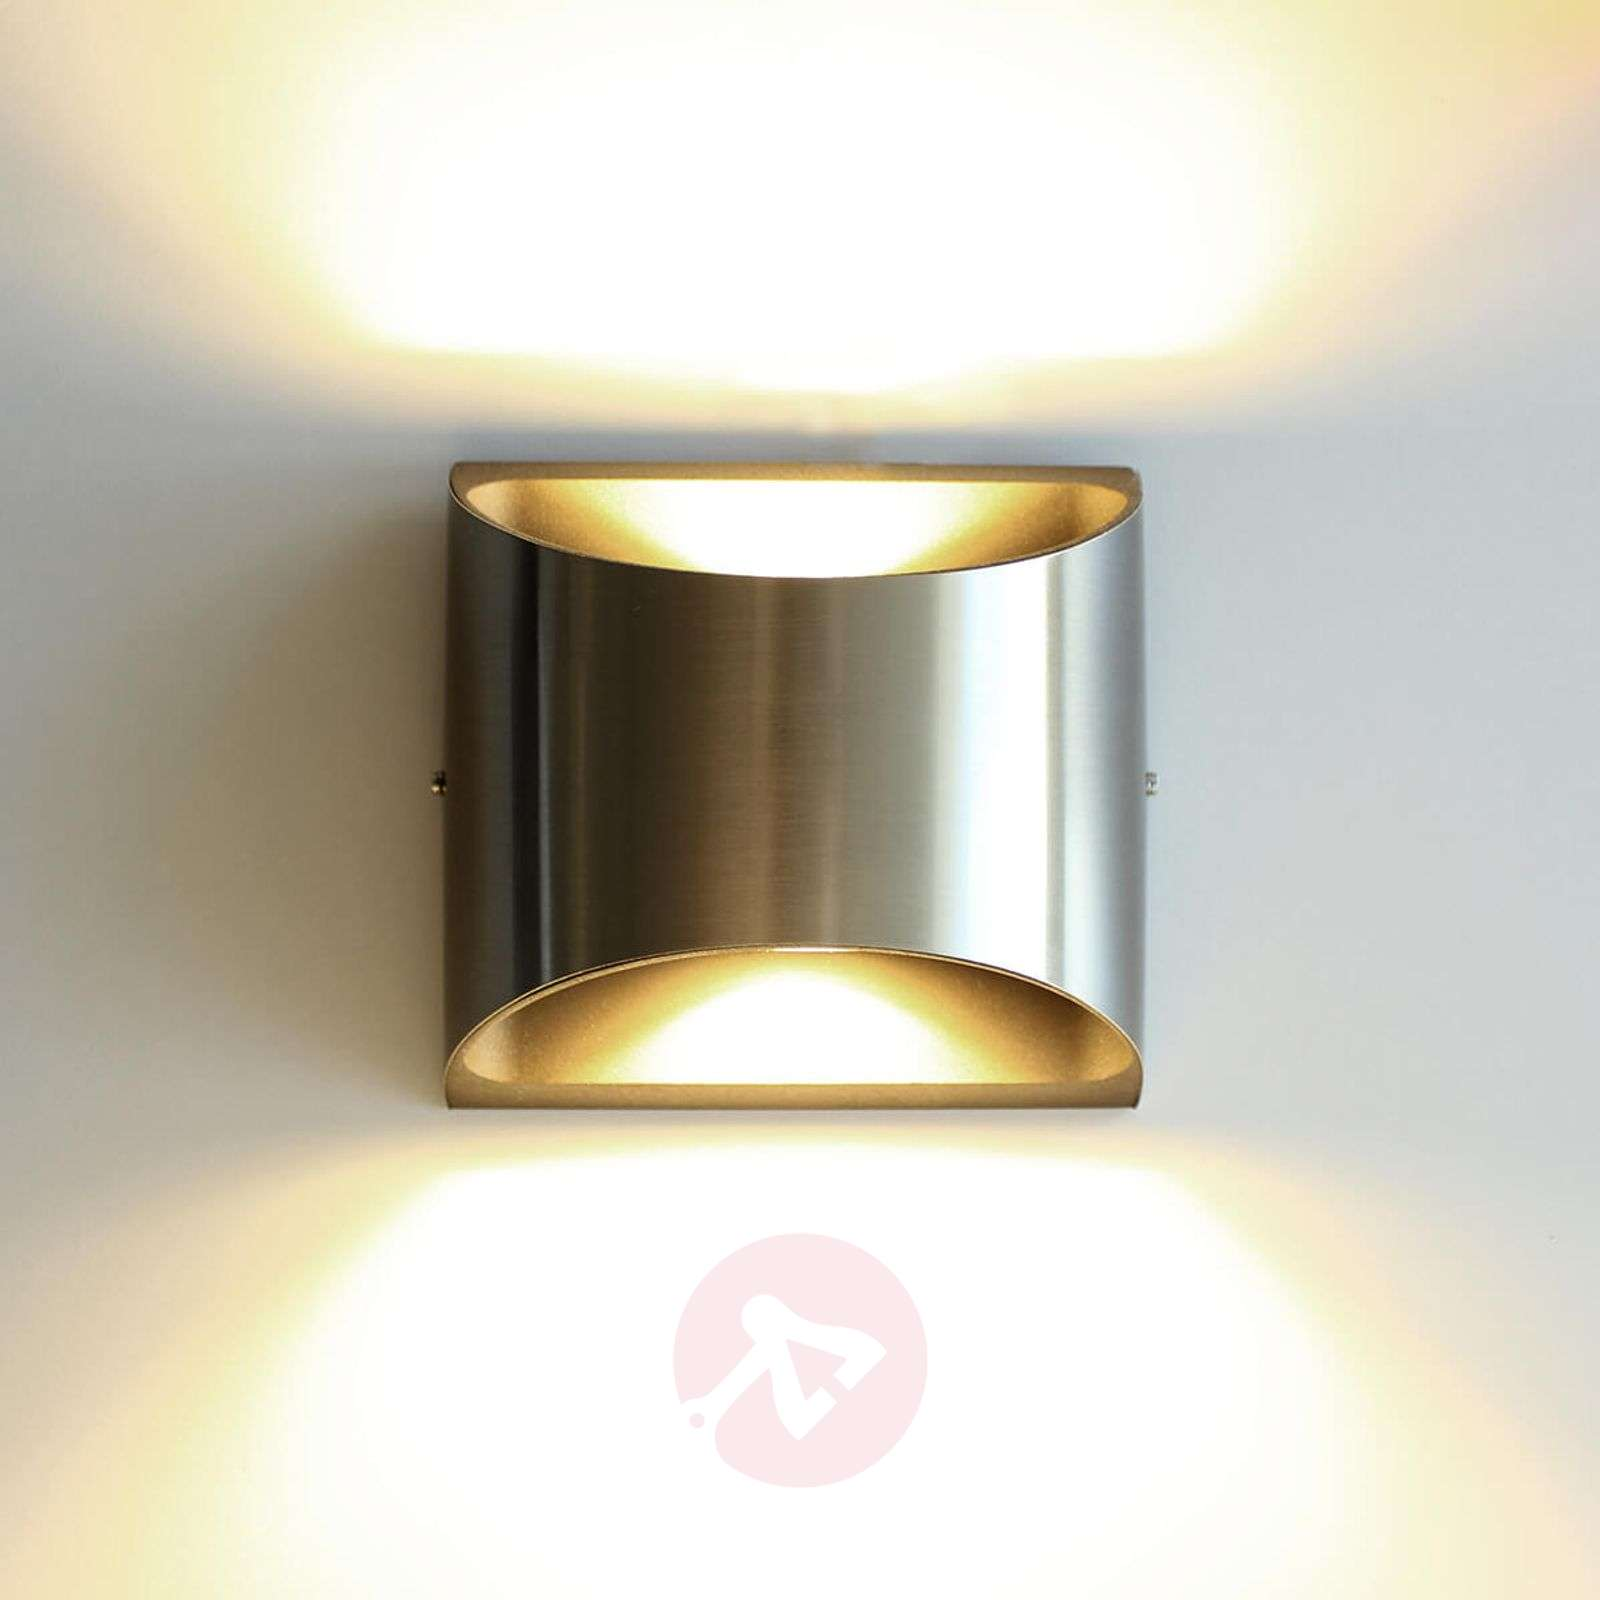 Dodd stainless steel outdoor wall light with LED-3006517-01